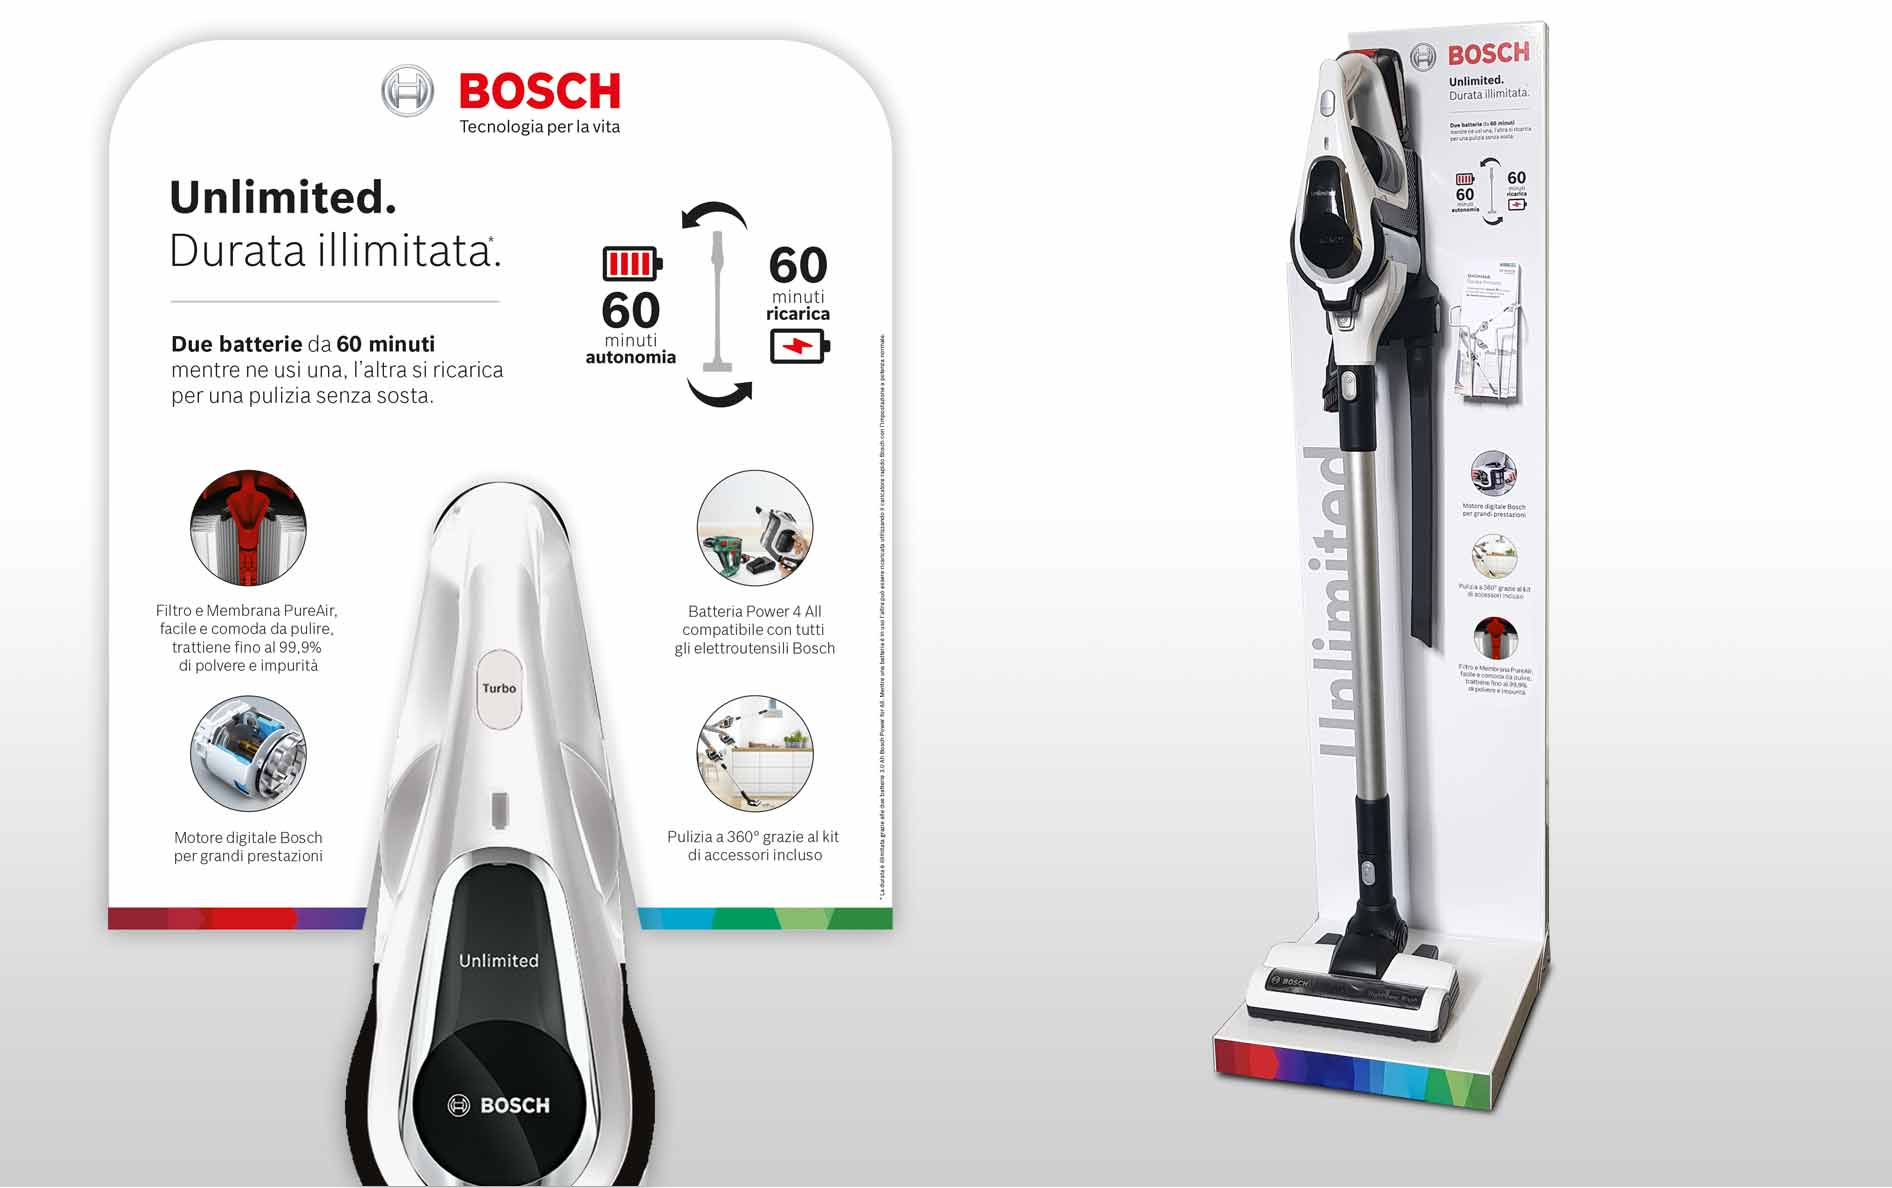 Bosch Unlimited